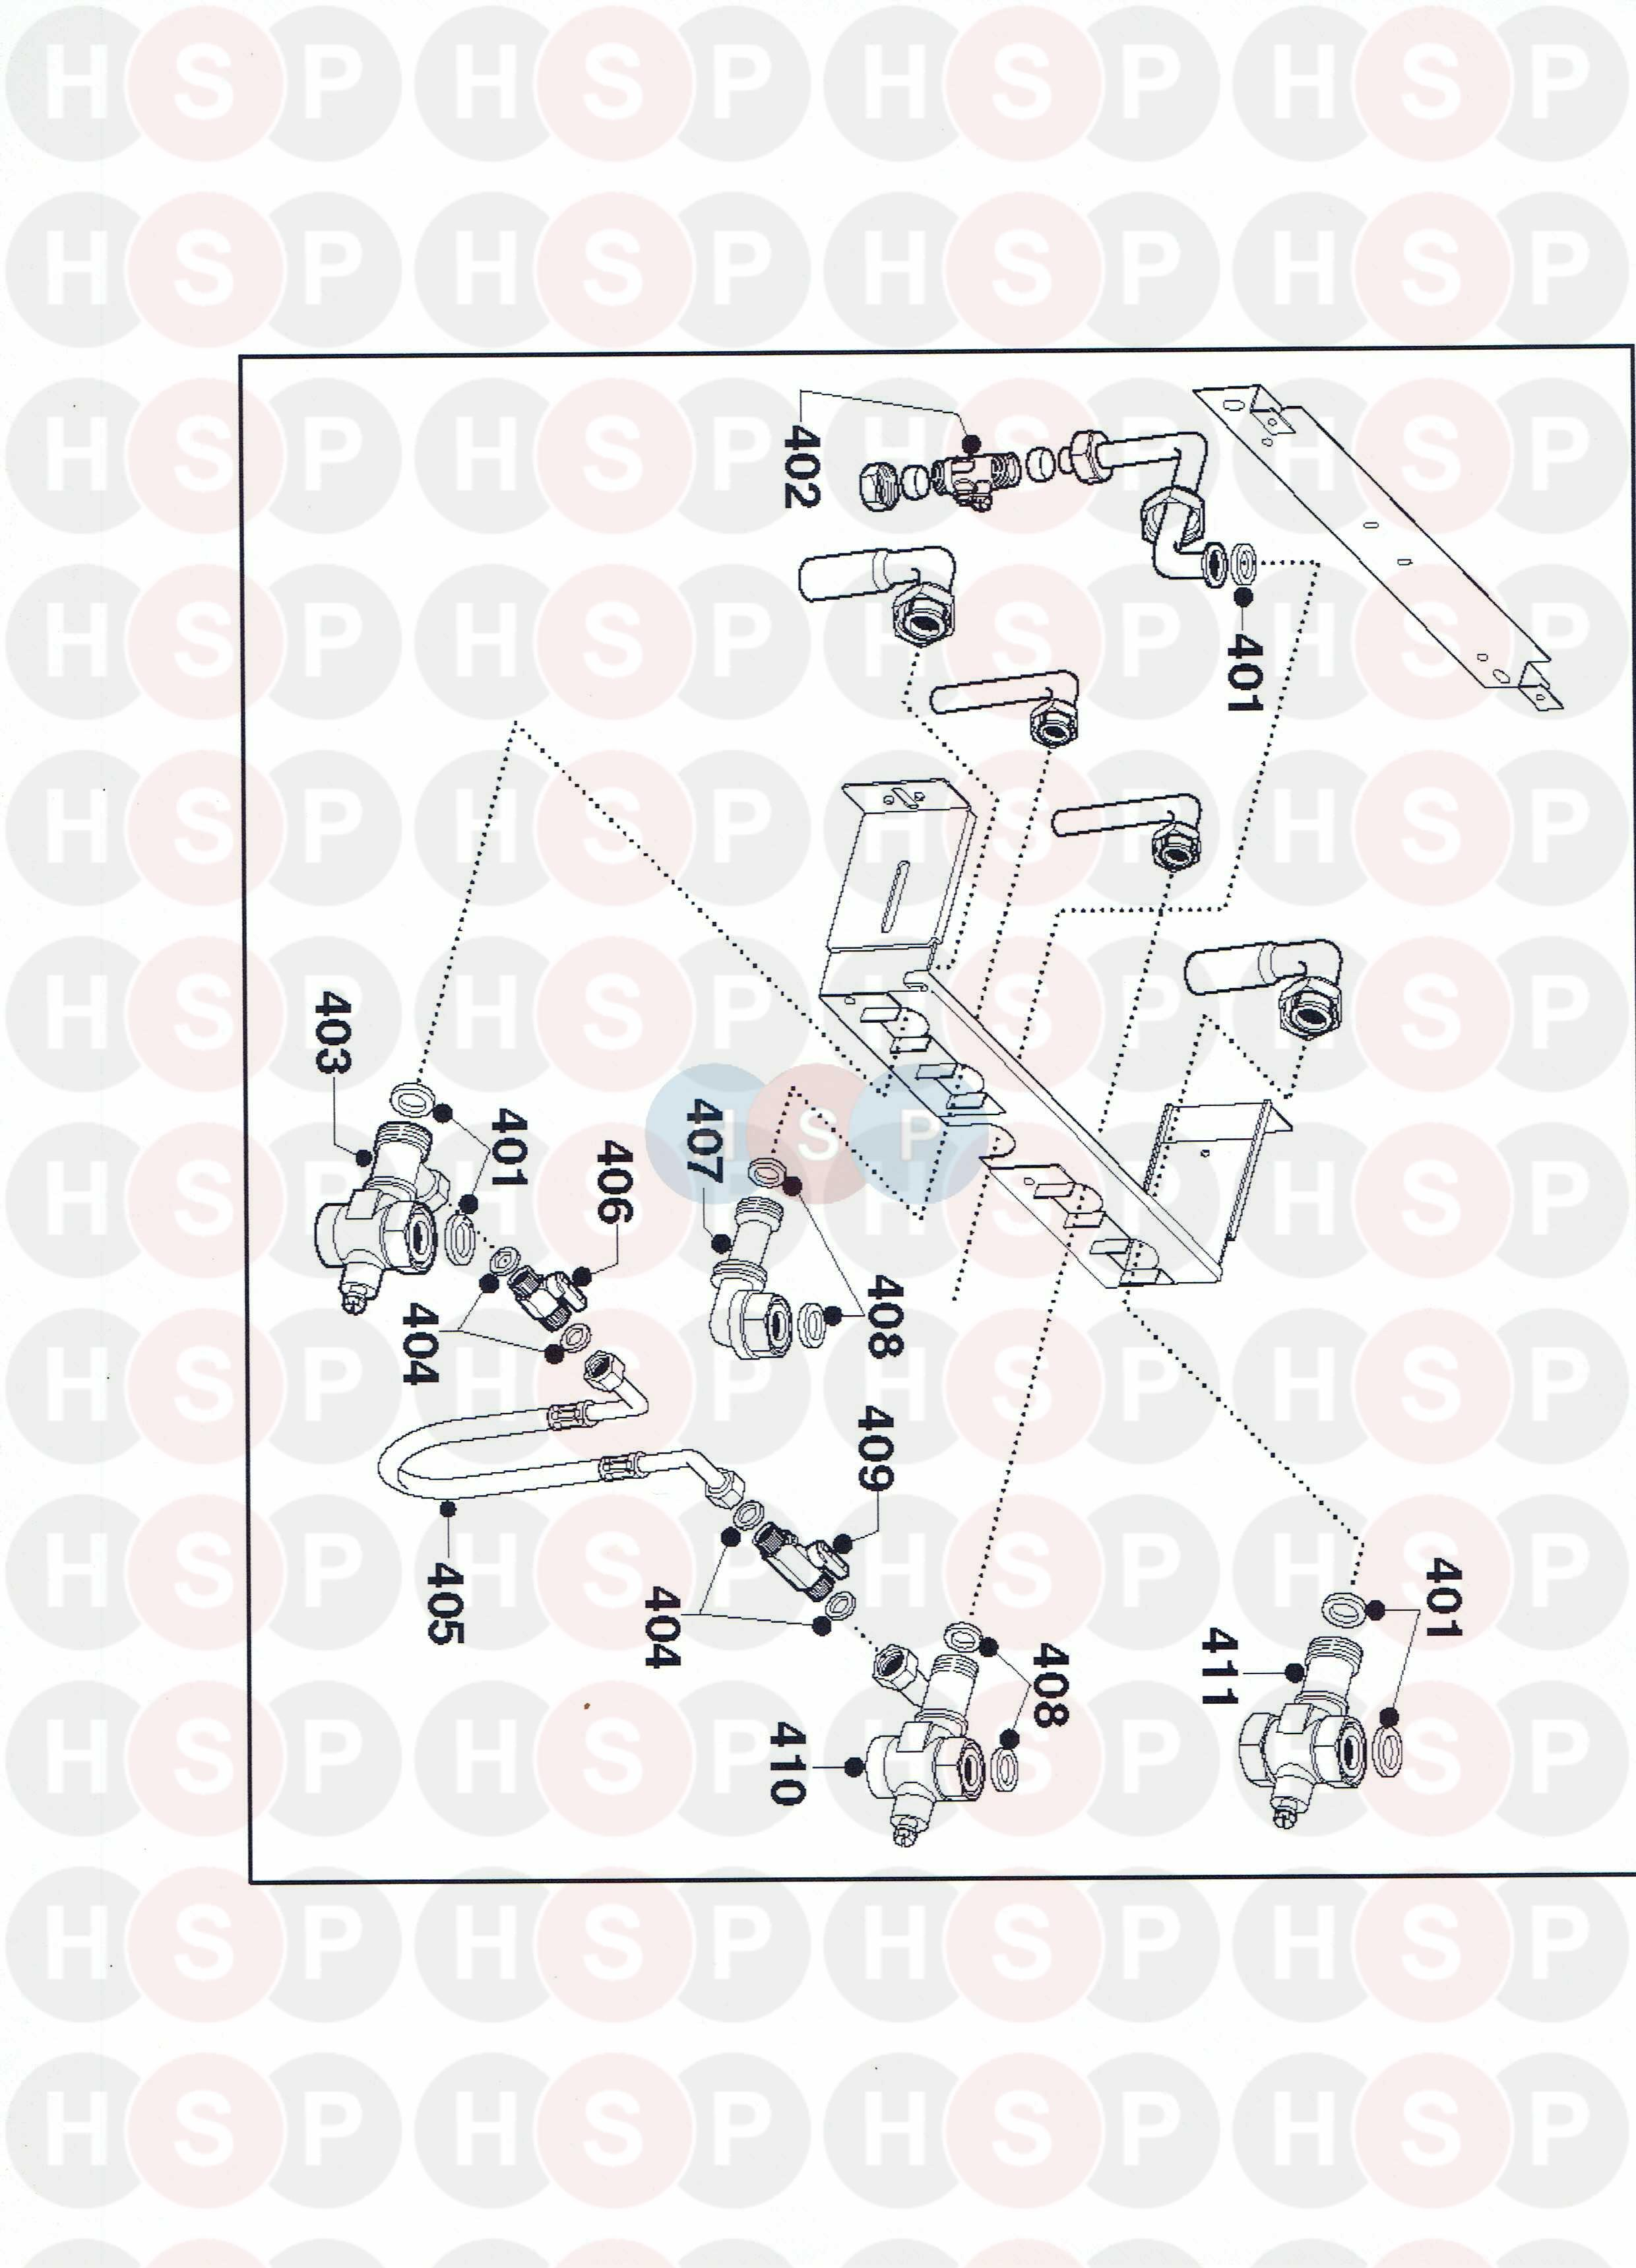 Ariston eco combi 27 mffi connections diagram heating spare parts click the diagram to open it on a new page asfbconference2016 Images